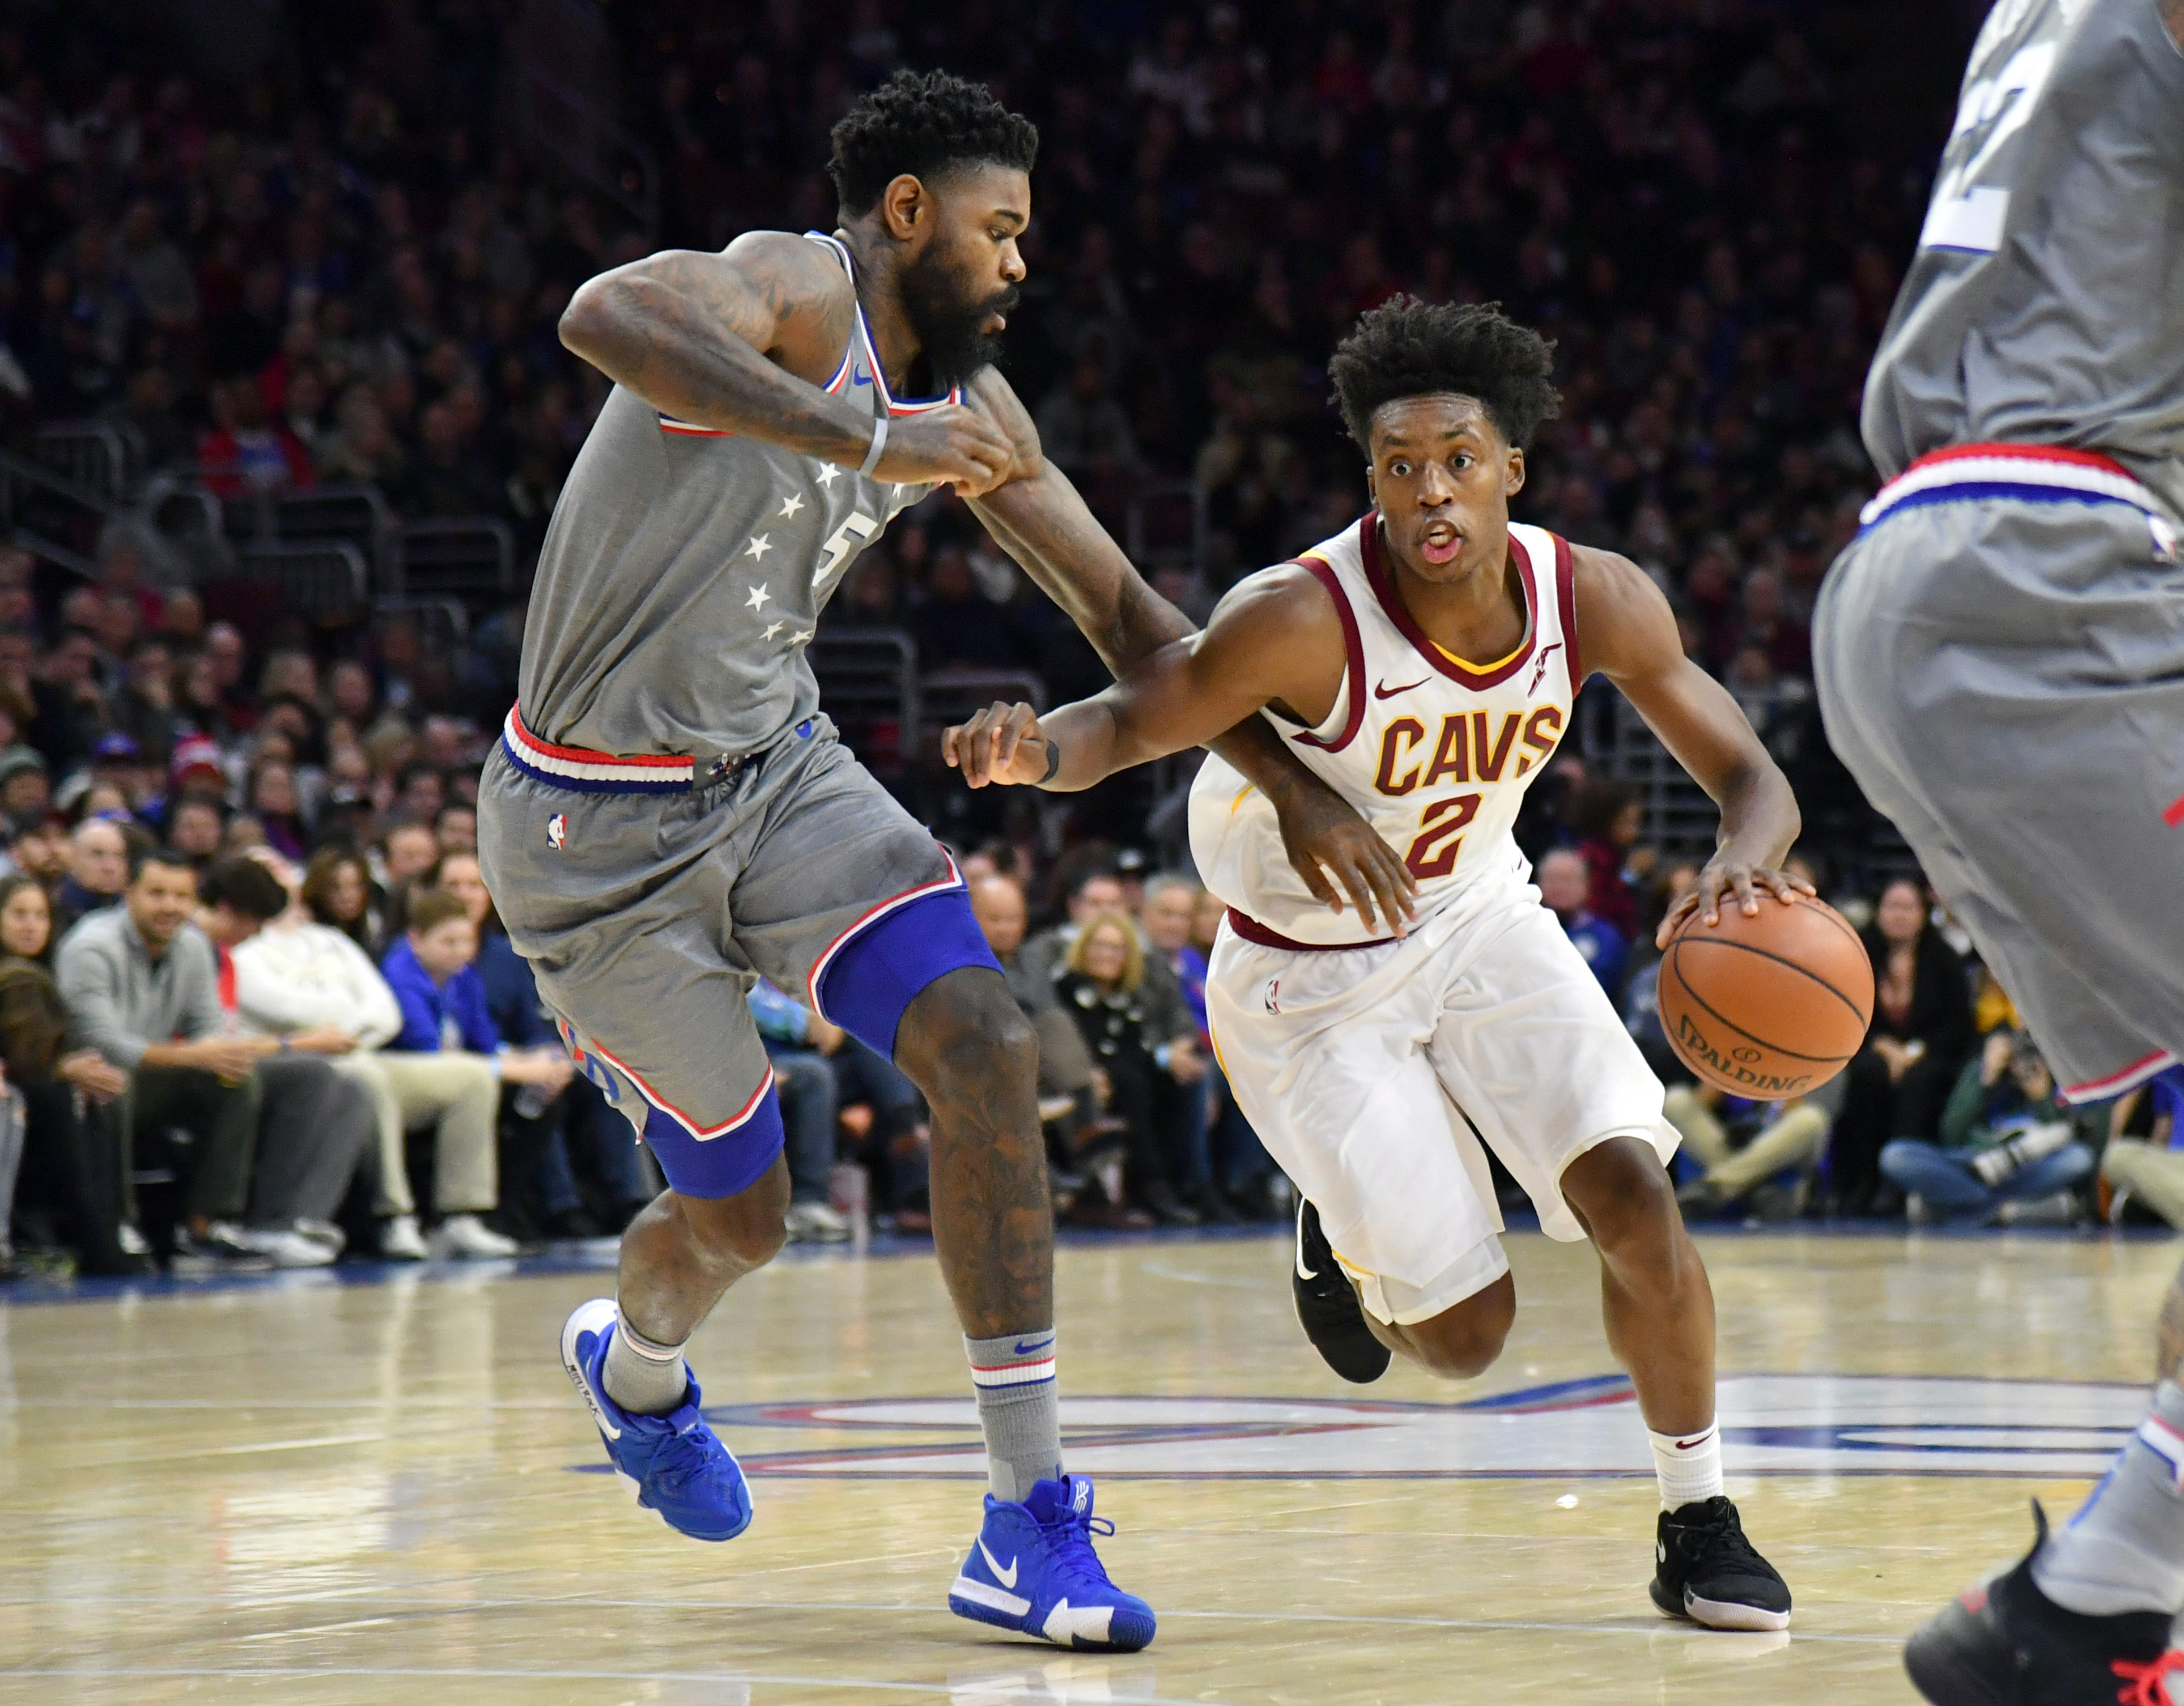 Sixers vs Warriors Injury Report: Amir Johnson out, Jonah Bolden will play